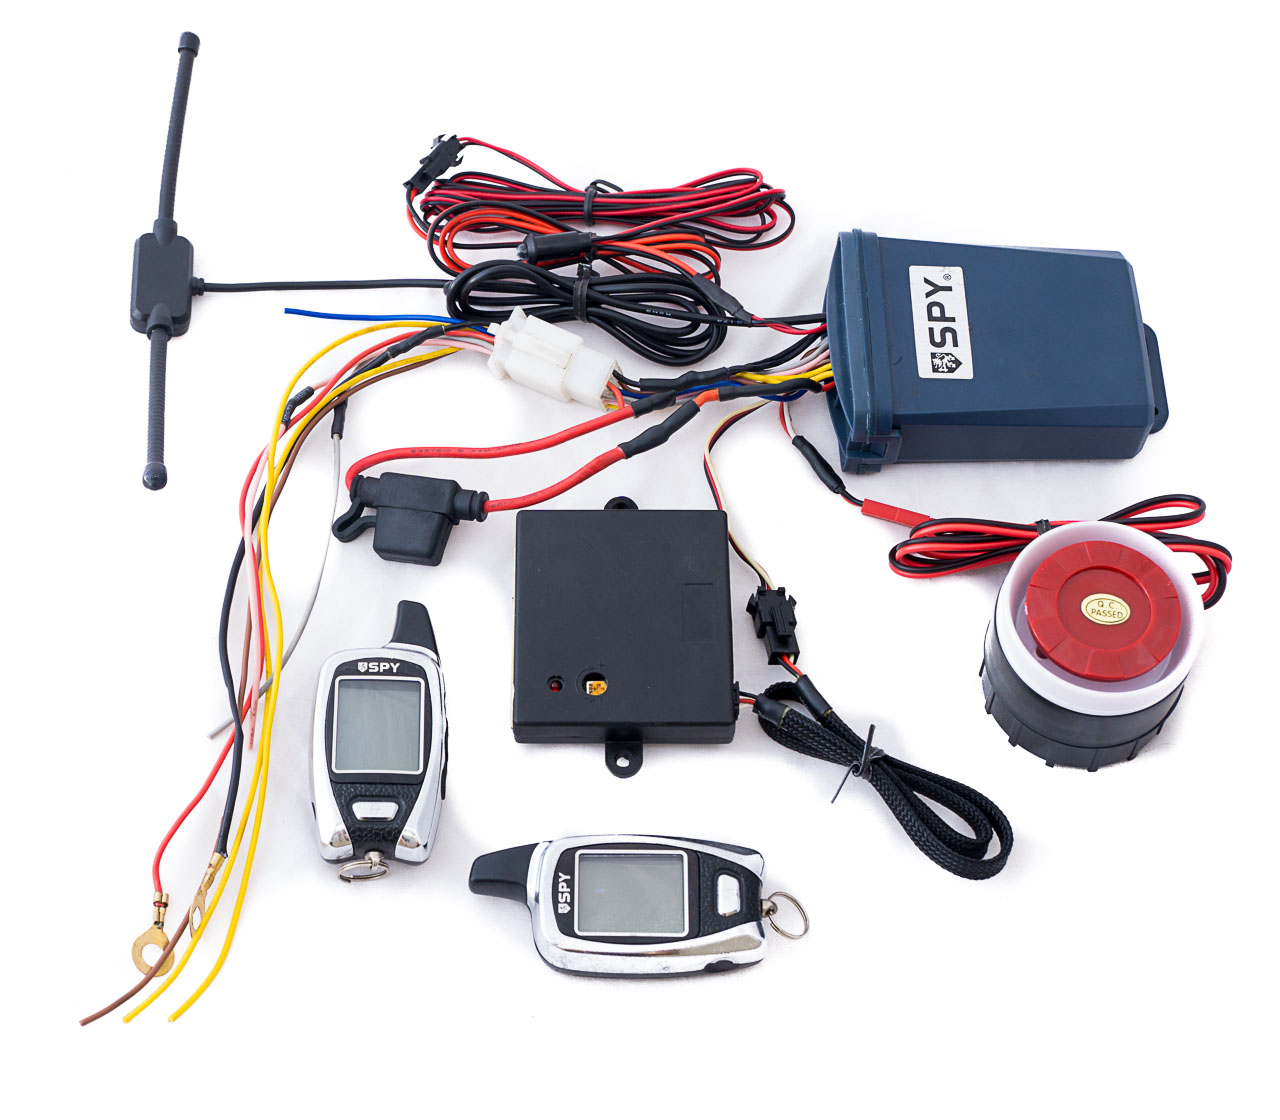 Motorcycle Gps Tracker Alarm Install With Remote Kill Switch Full Help Wanted And Ignition Wiring Consider The Different Types Of Systems